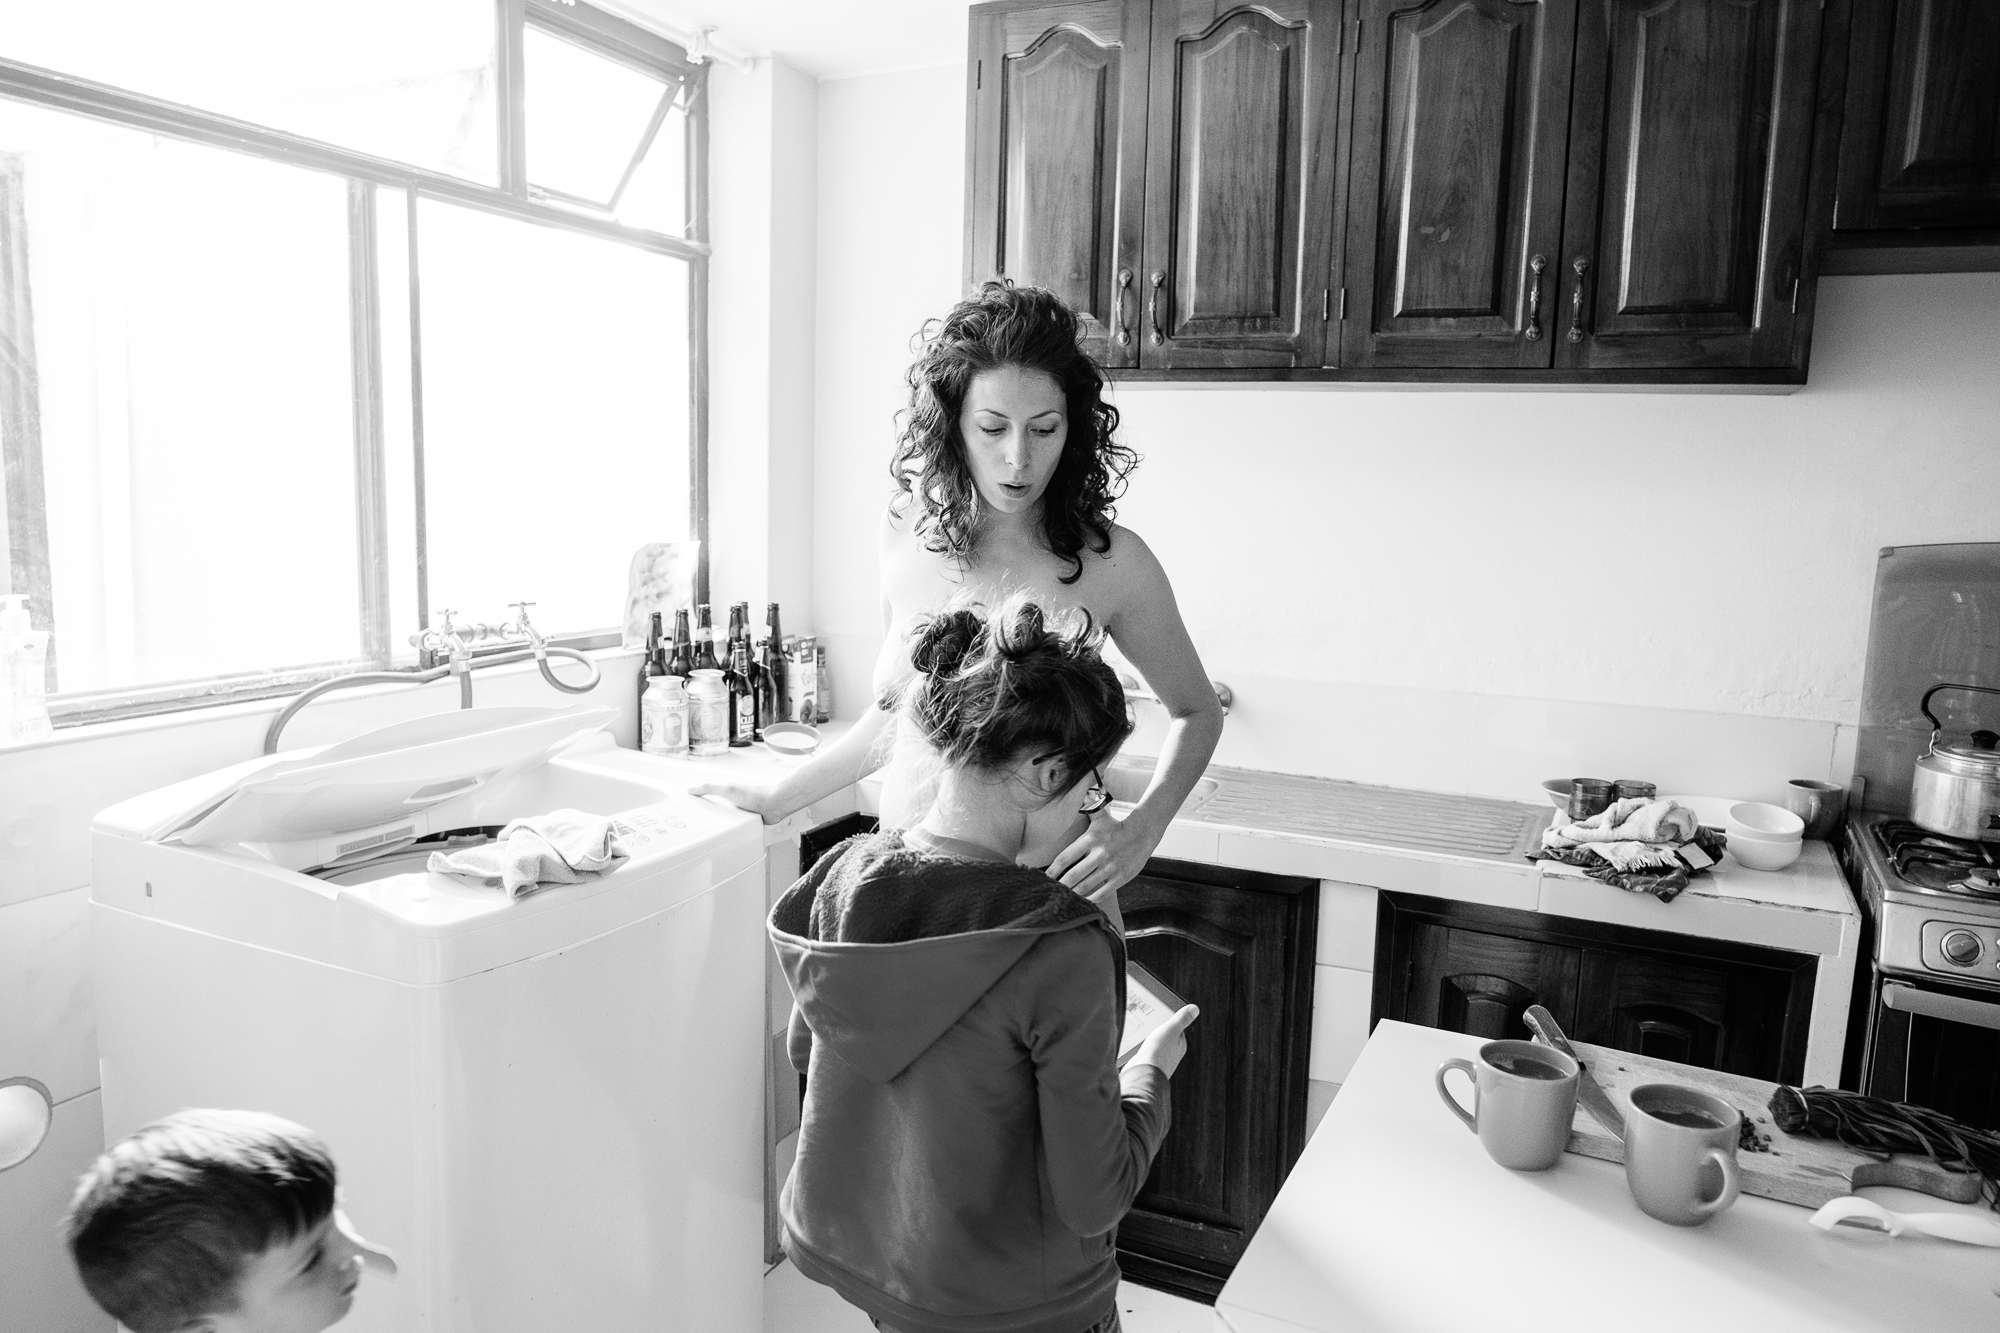 20161005__A Day In The Life_X-Pro2_0481.jpg